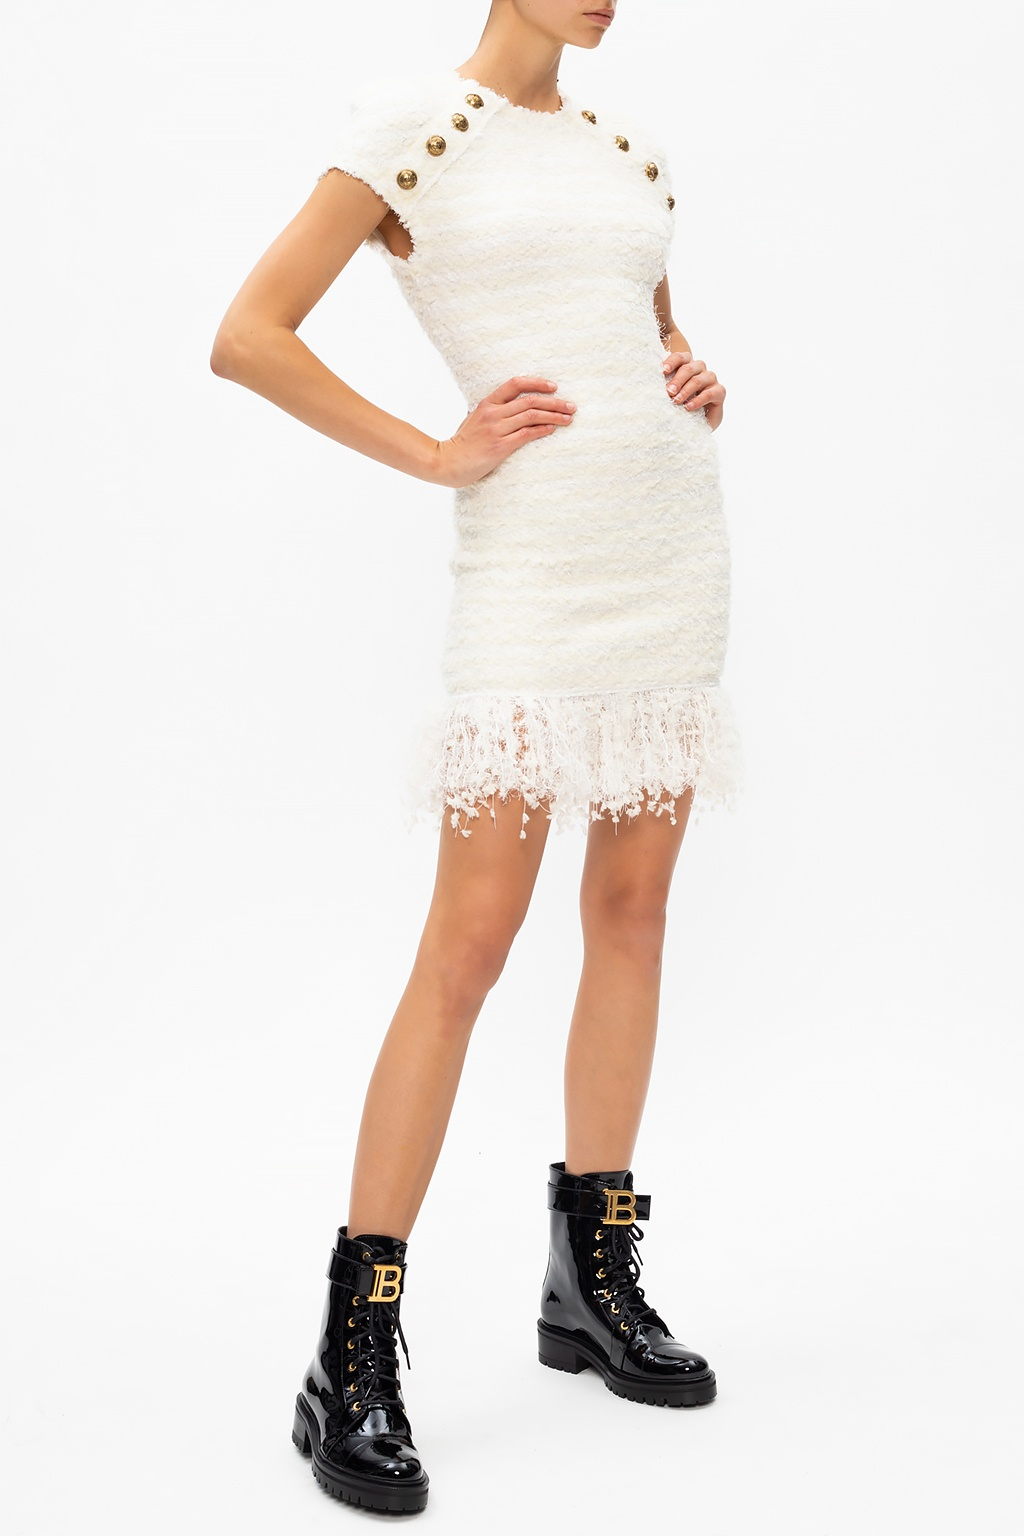 Balmain Fringed dress